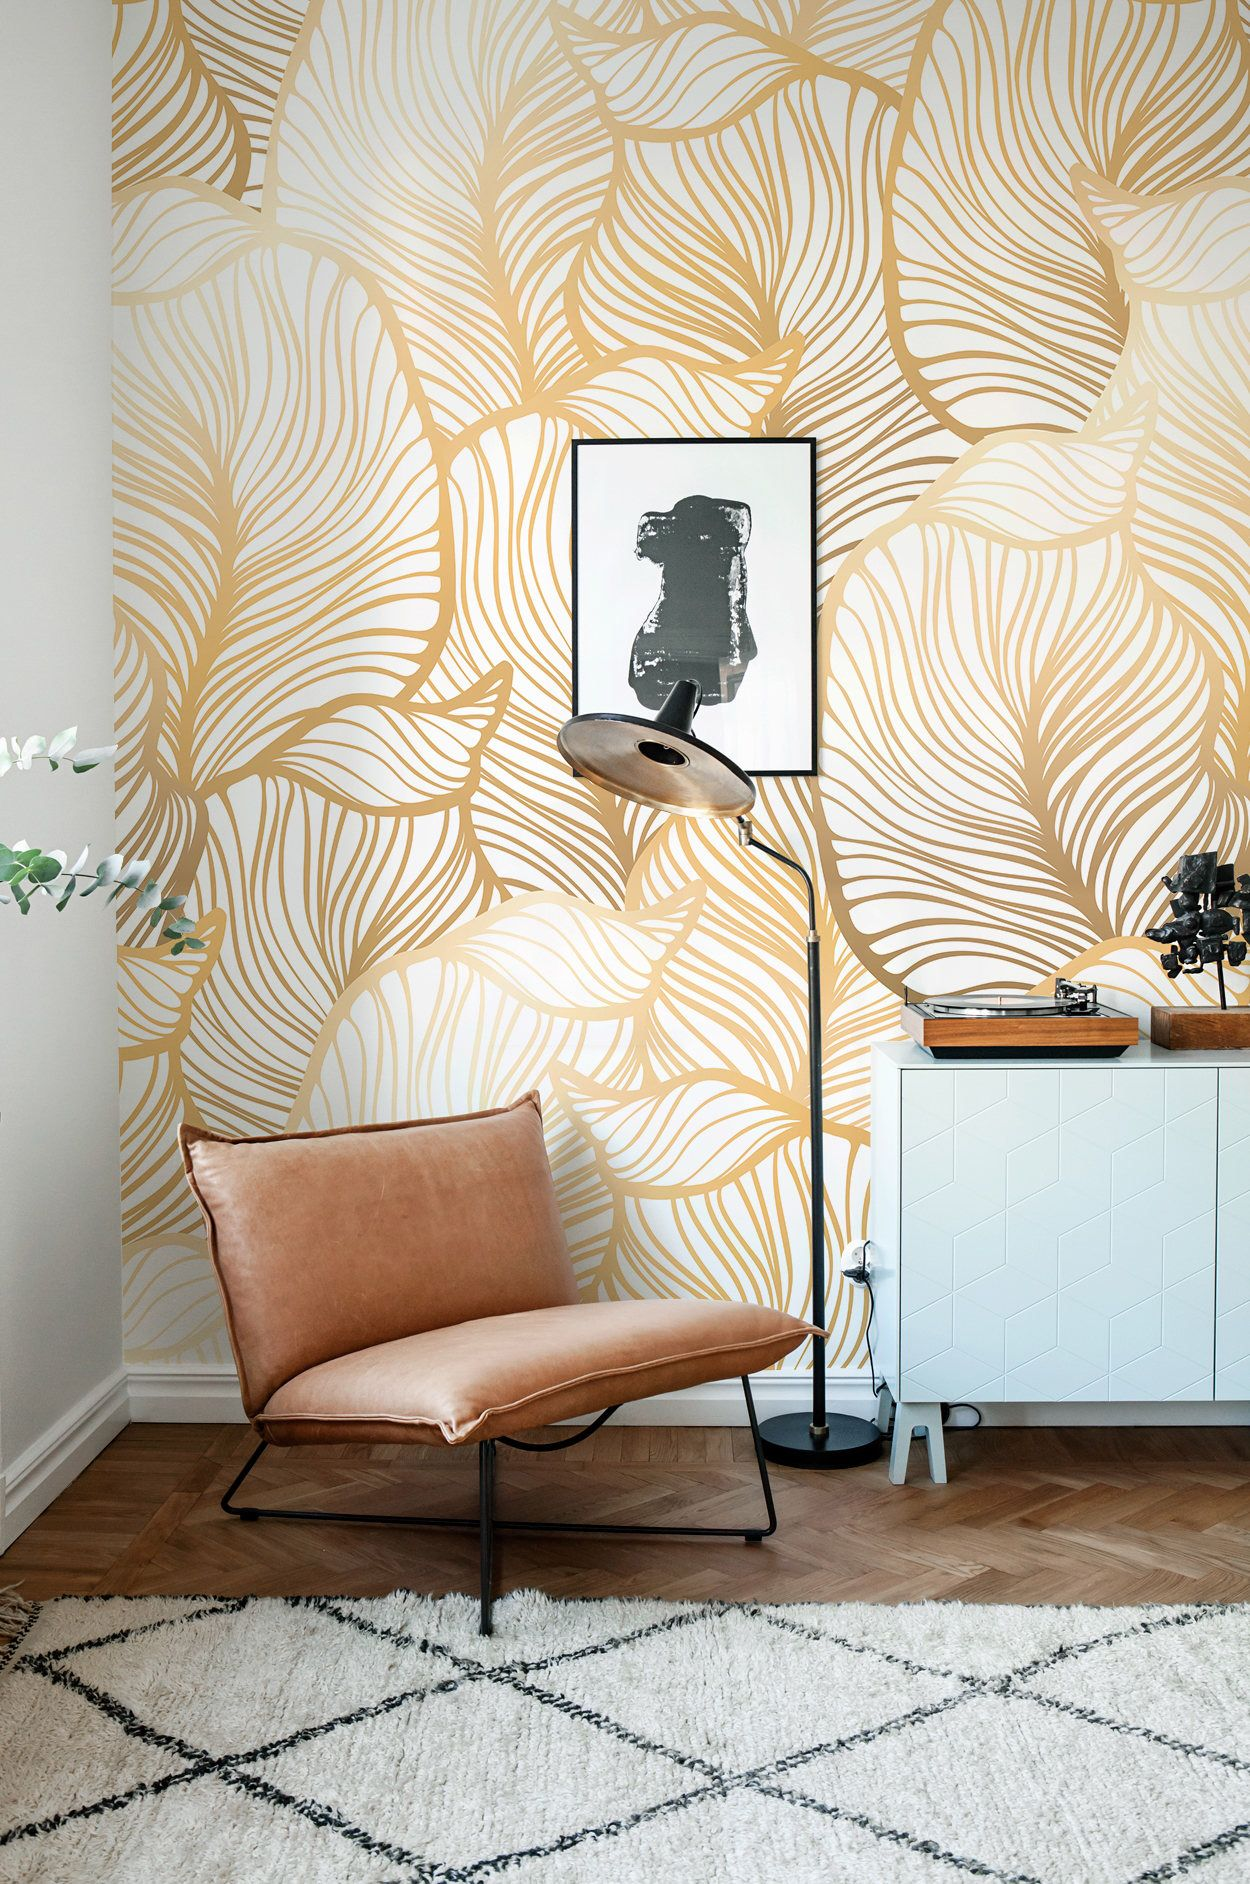 Solid Gold Leaf Wallpaper, Exotic Leaves Wallpaper, Large Leaf Wall Mural,  Home Décor, Easy Install Wall Decal, Removable Wallpaper B013 By Betapet On  Etsy ...